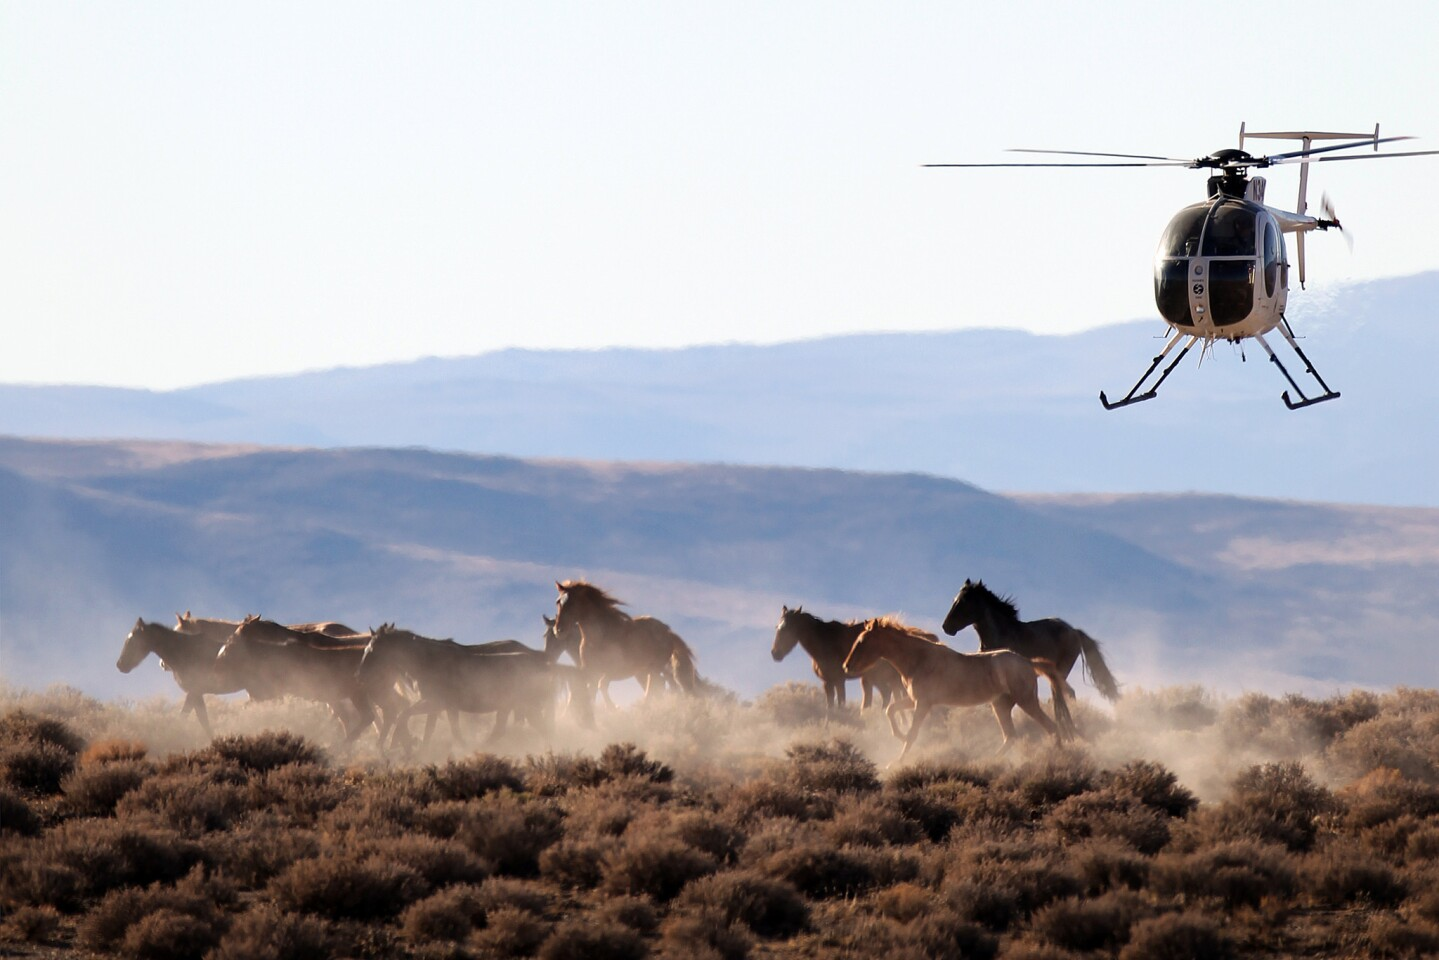 Wild mustangs are herded by helicopter into temporary corrals before they are hauled in trailers from public rangeland. They are then auctioned off or sent to live in government-funded holding areas.